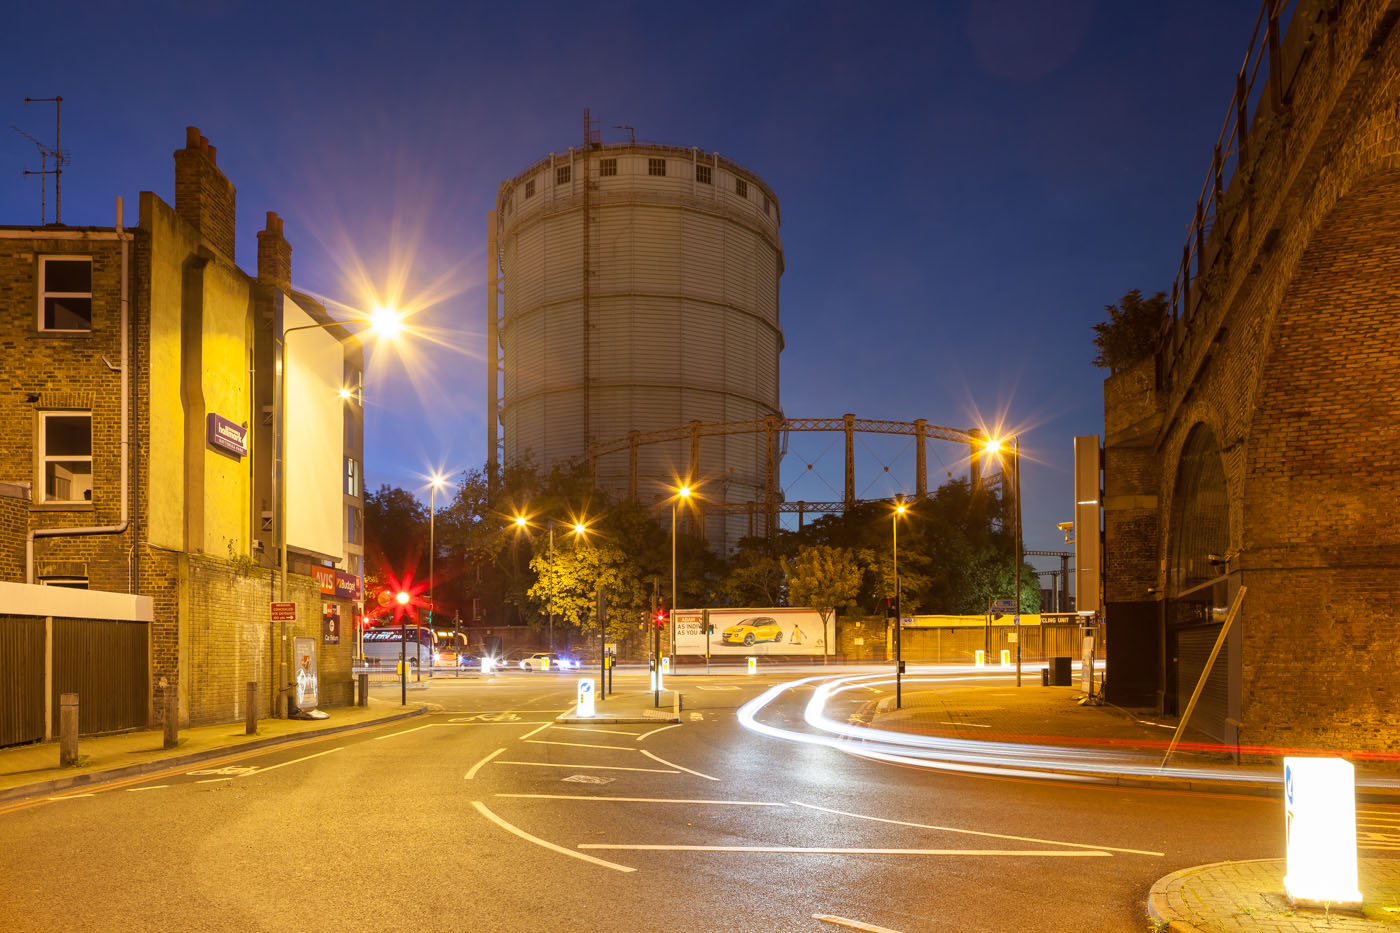 Gasholder | Battersea Park Road at night